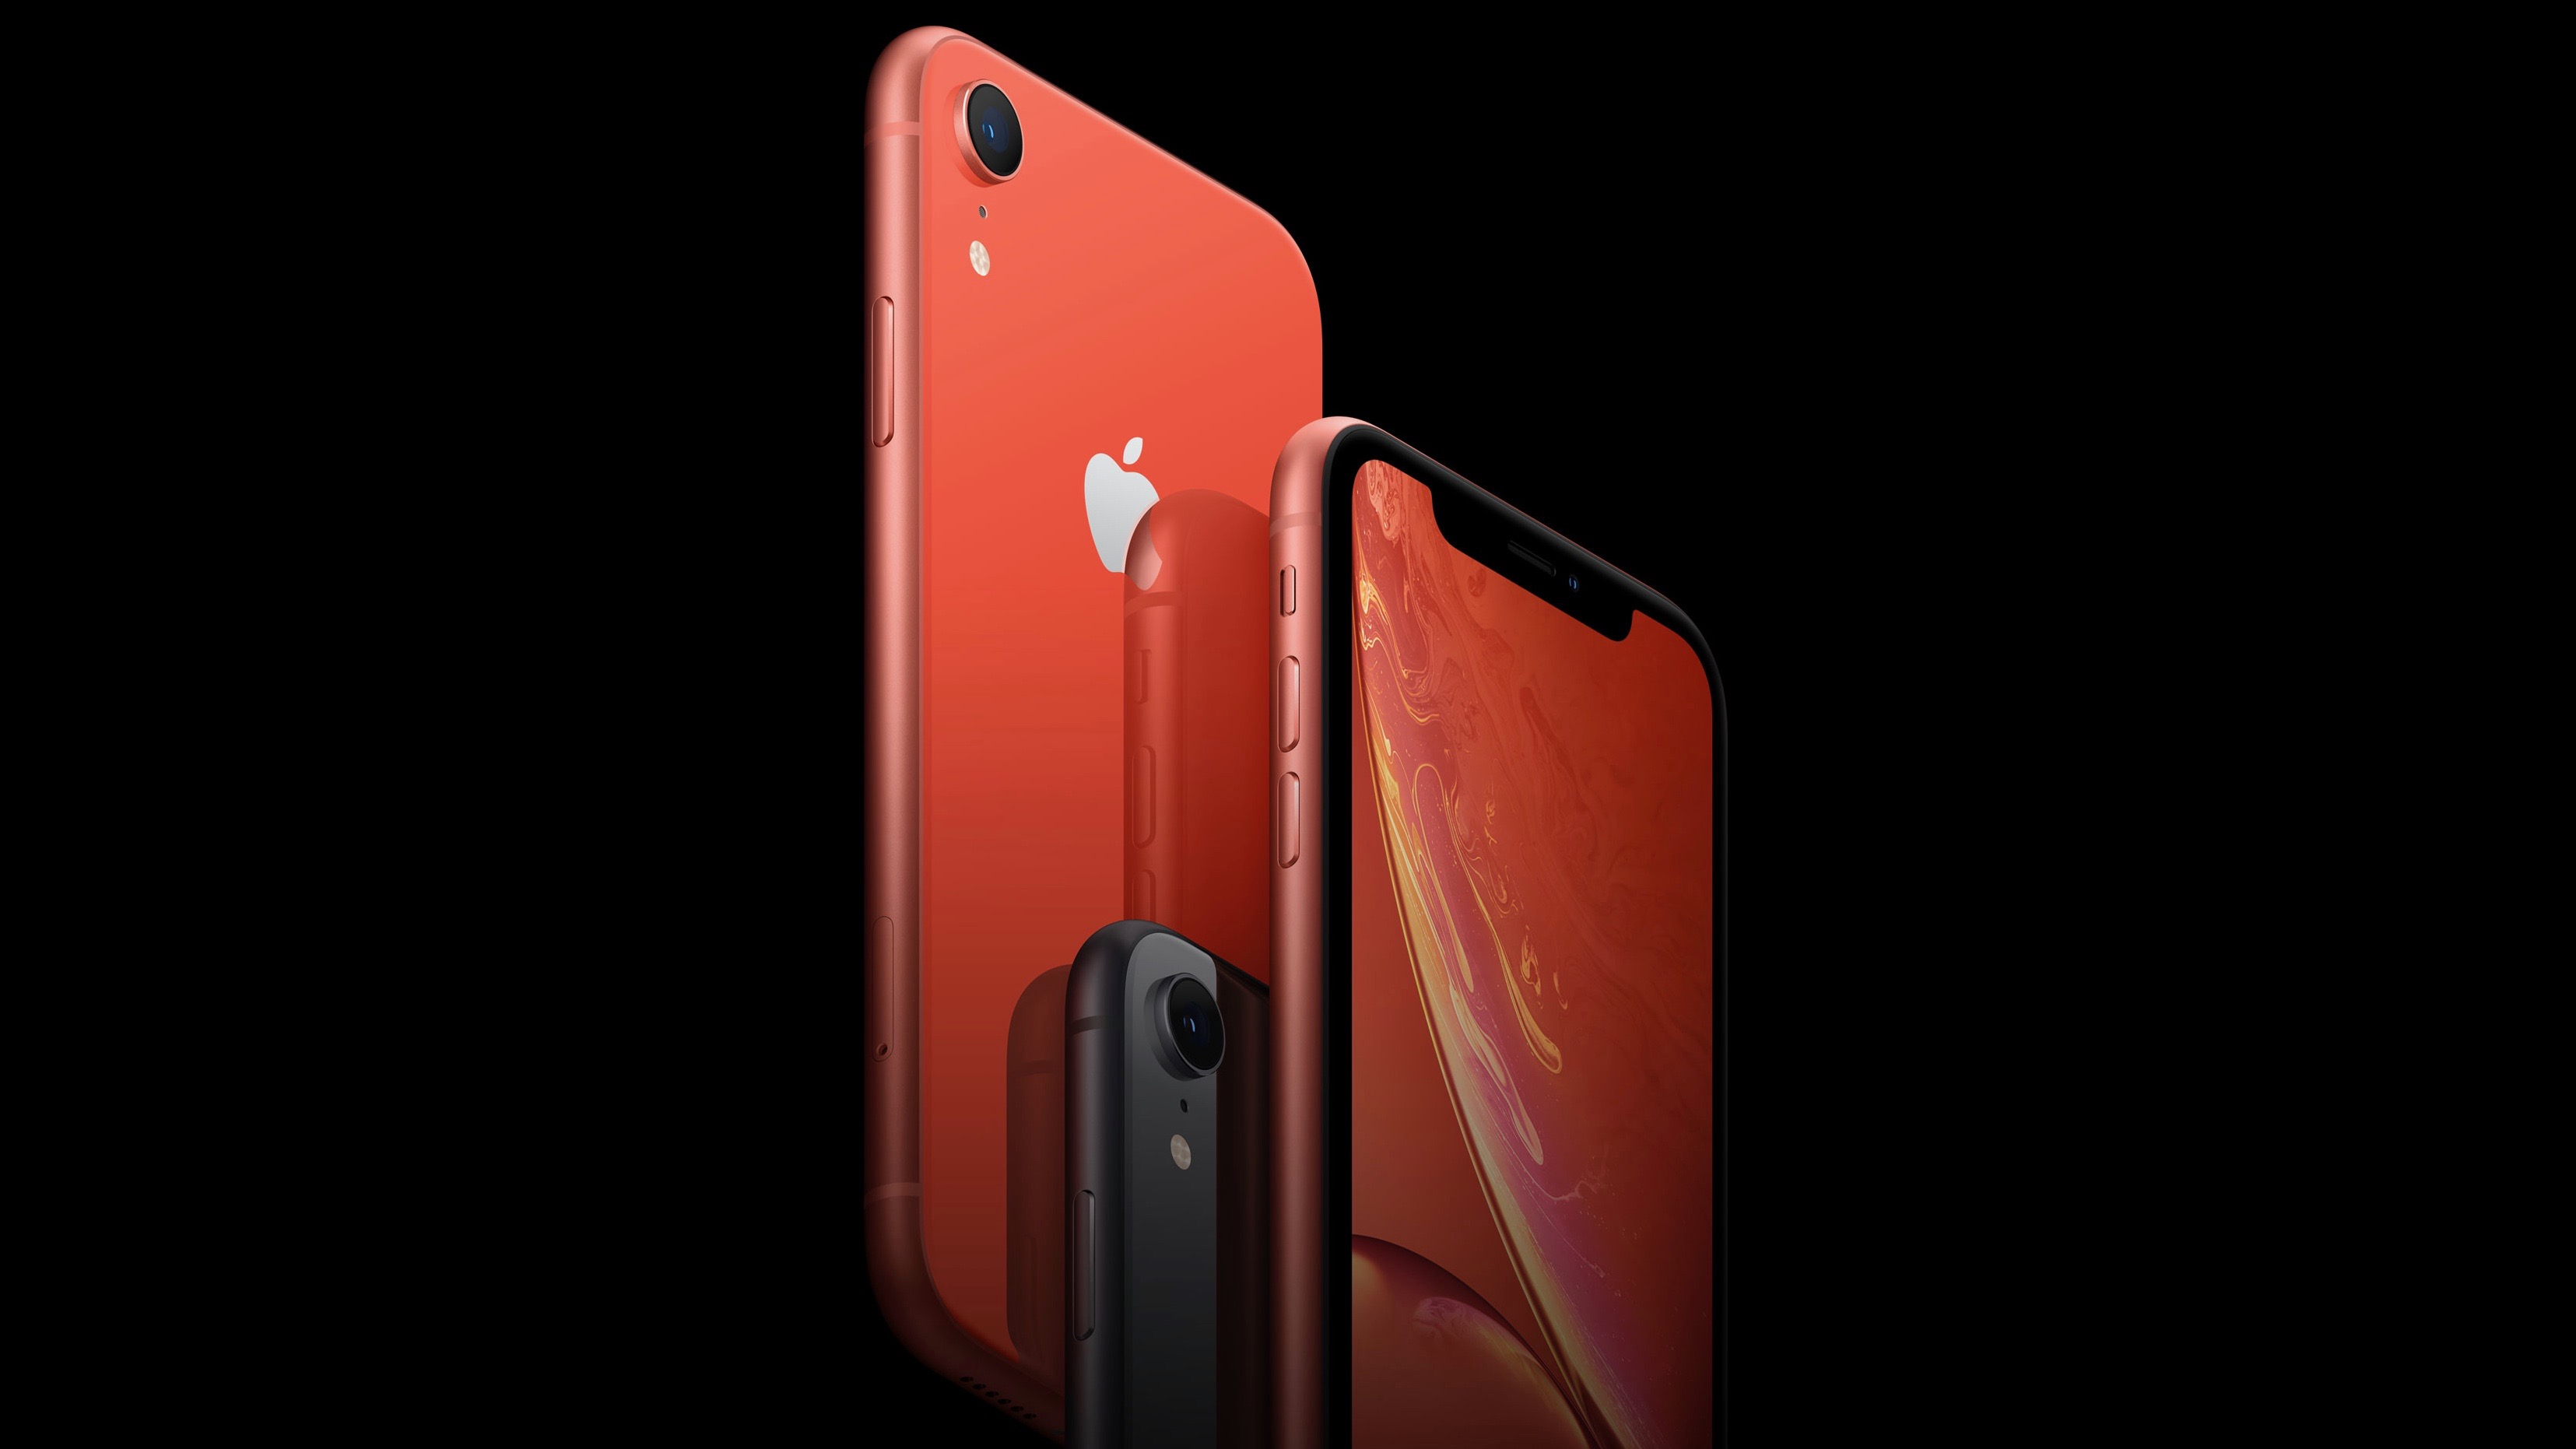 iphone xr includes 12 colorful new wallpapers download them here gallery